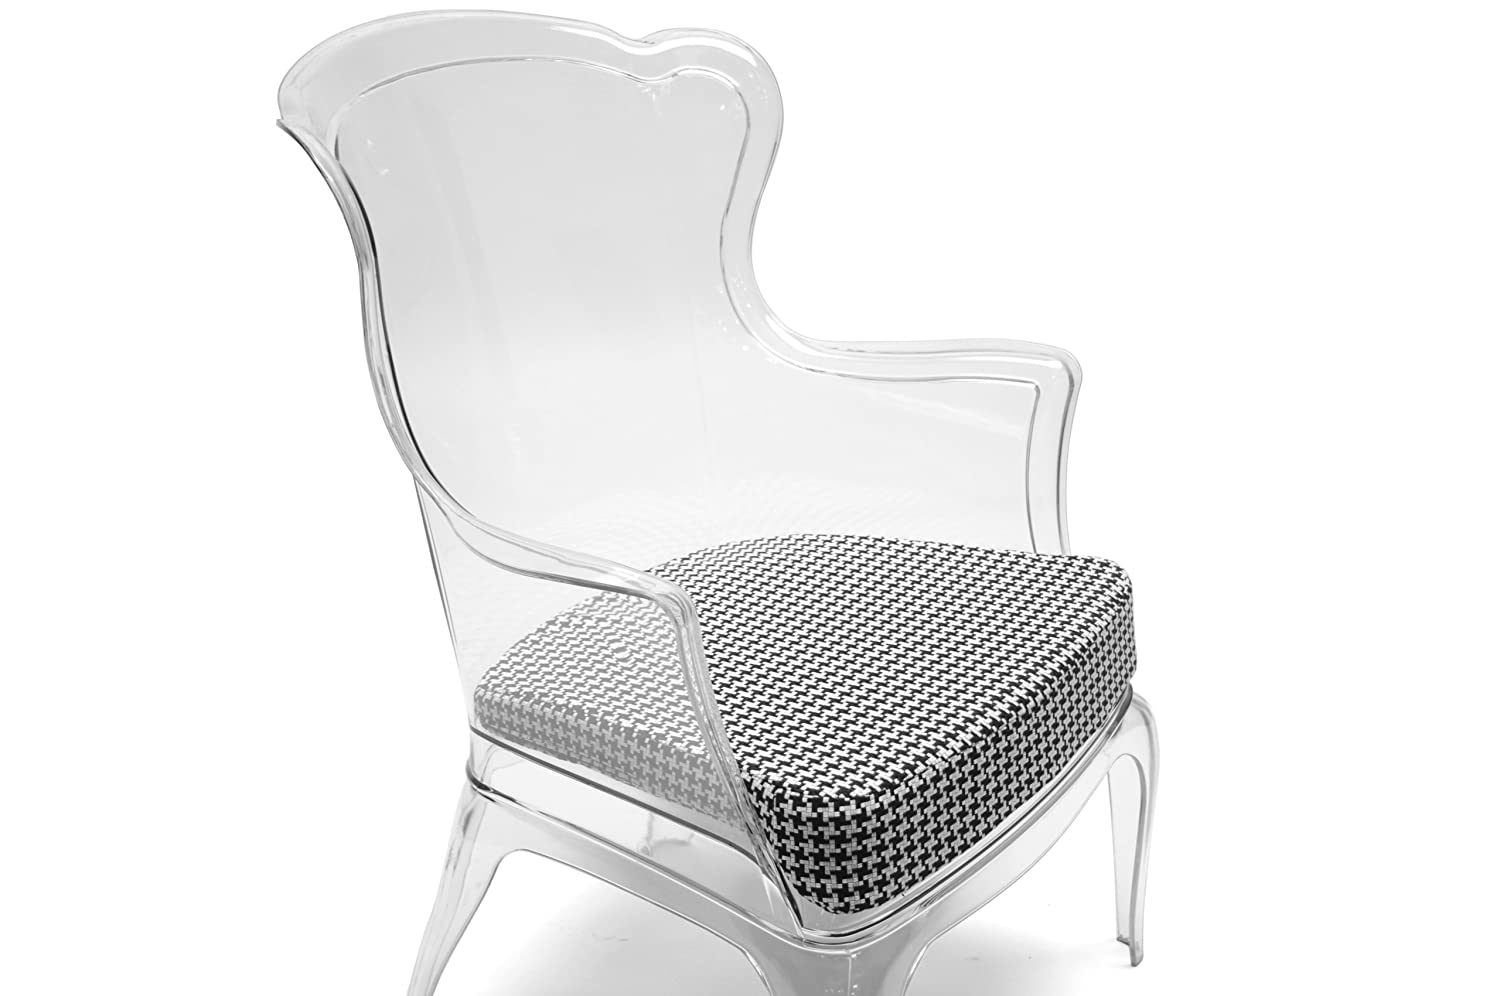 Amazon.com: Baxton Studio Tasha Polycarbonate Modern Accent Chair, Clear:  Kitchen U0026 Dining